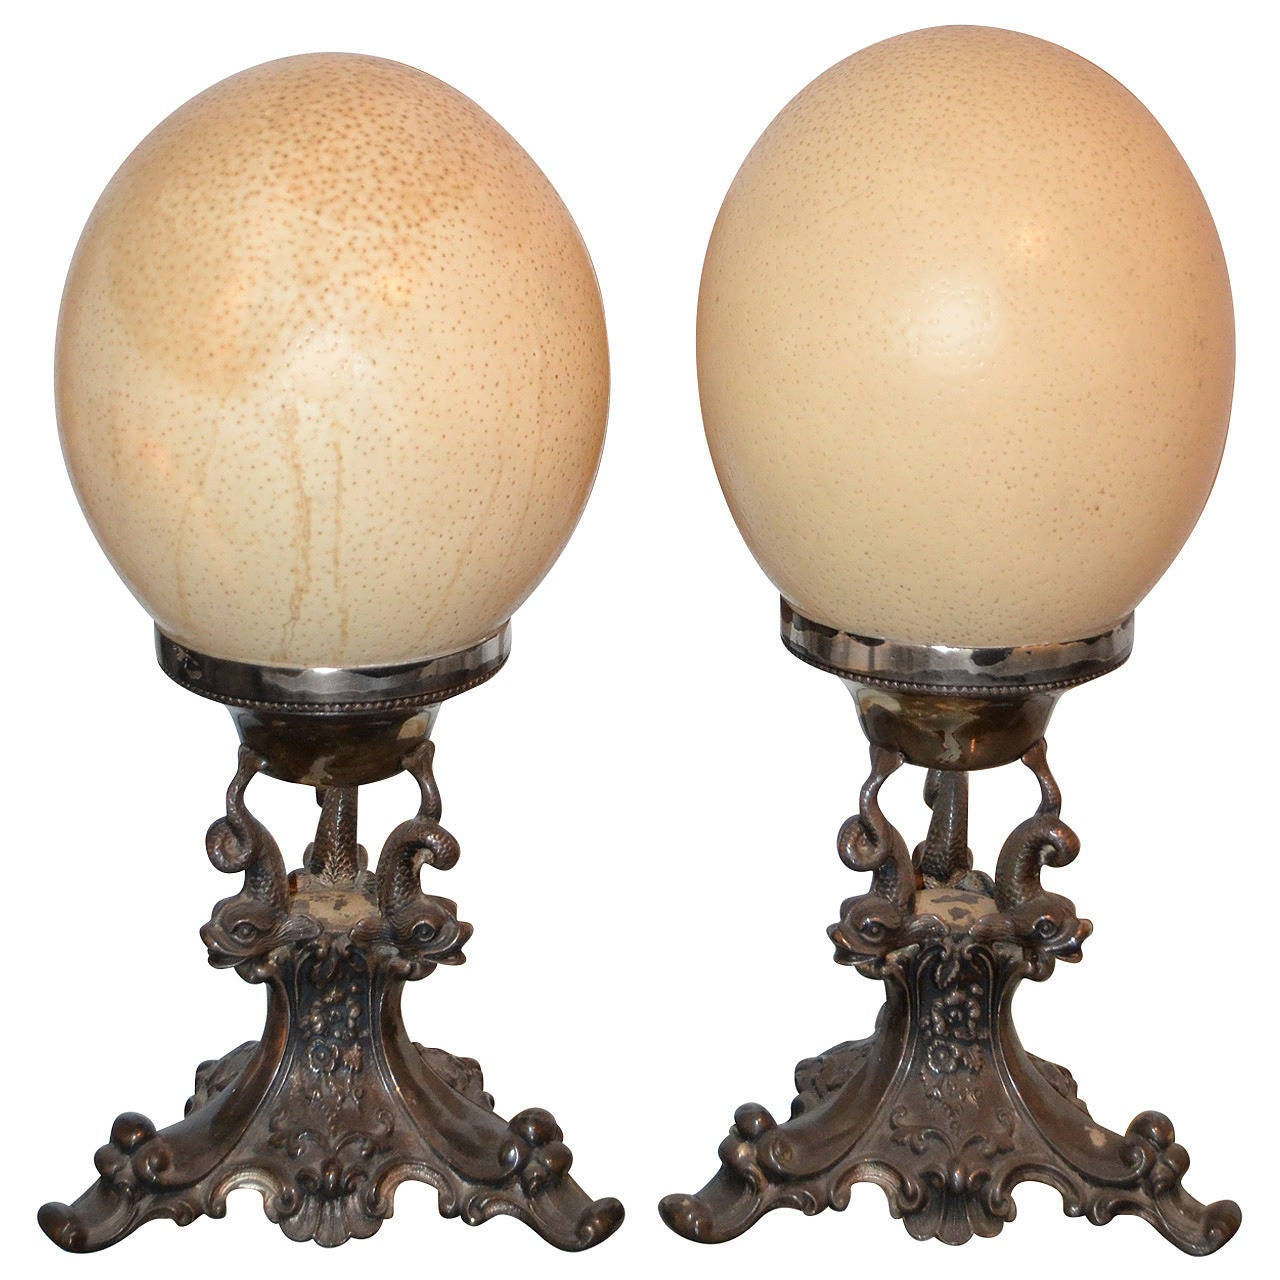 Anthony Redmile Ostrich Egg Finials For Sale